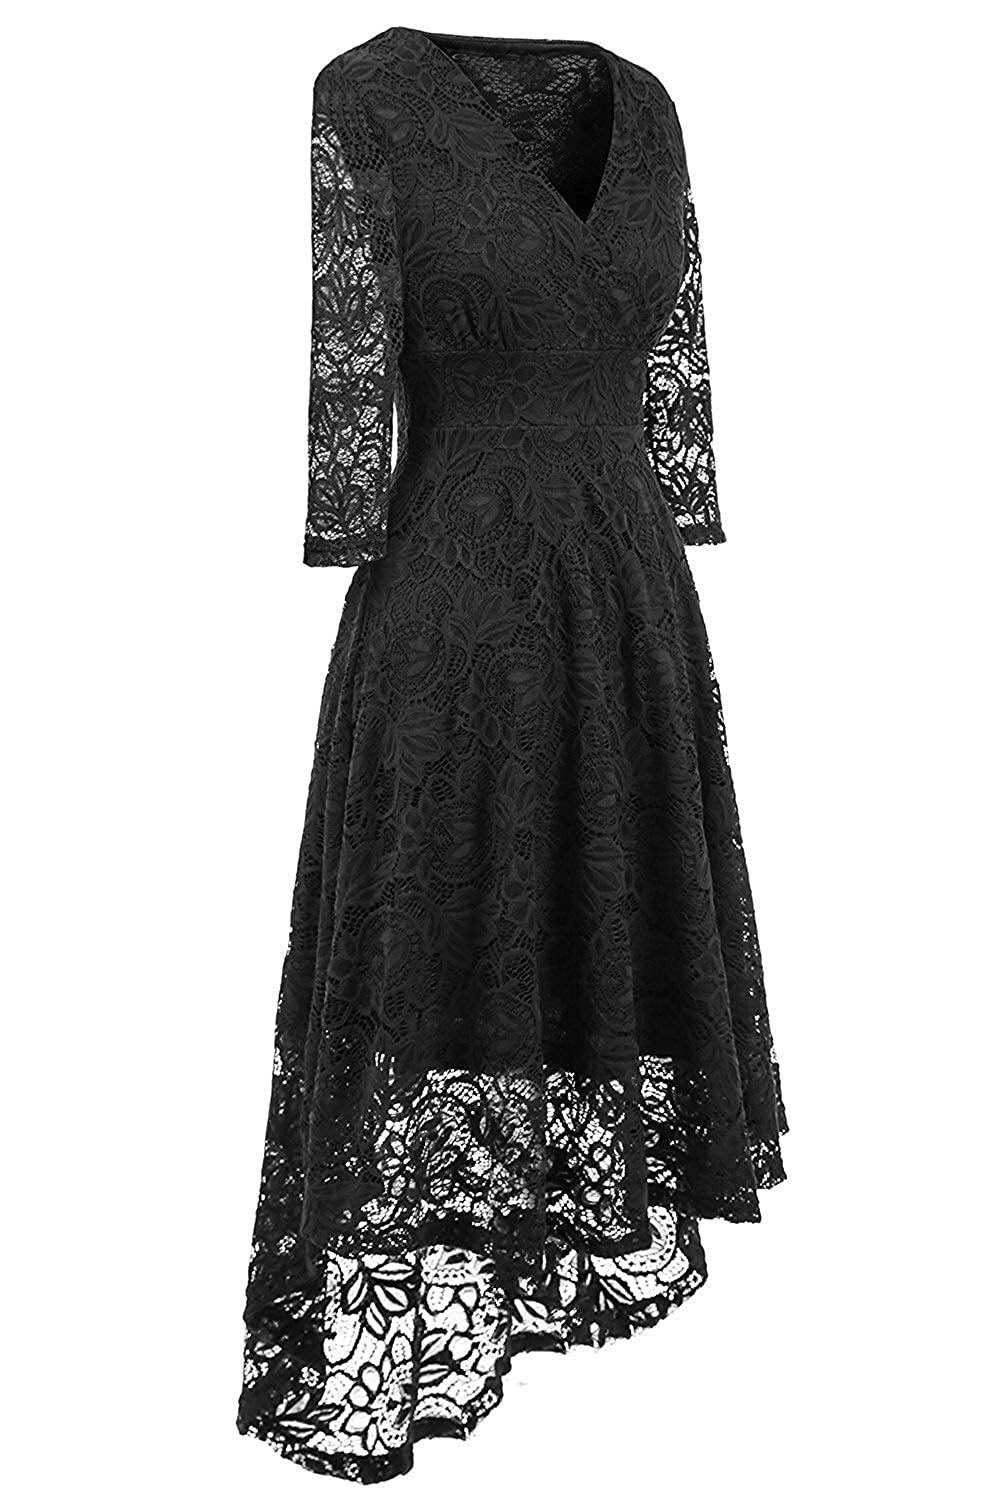 4bace86f8644 Women Lace Dress Vintage 50 s Retro 3 4 Sleeve Floral Swing Party Cocktail  Wedding Midi Dress  Amazon.co.uk  Clothing